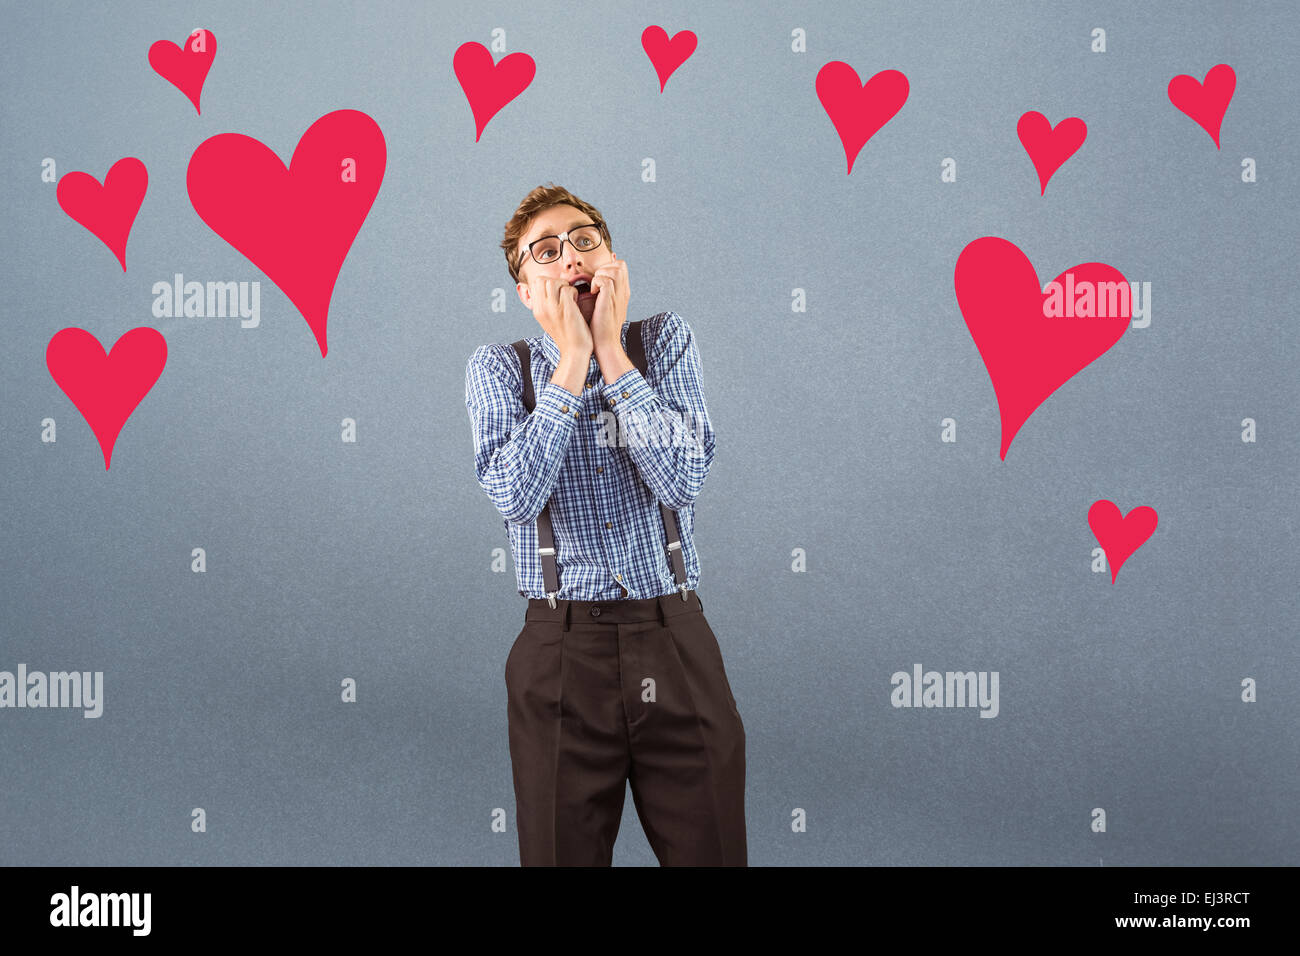 Composite image of geeky hipster biting his nails - Stock Image